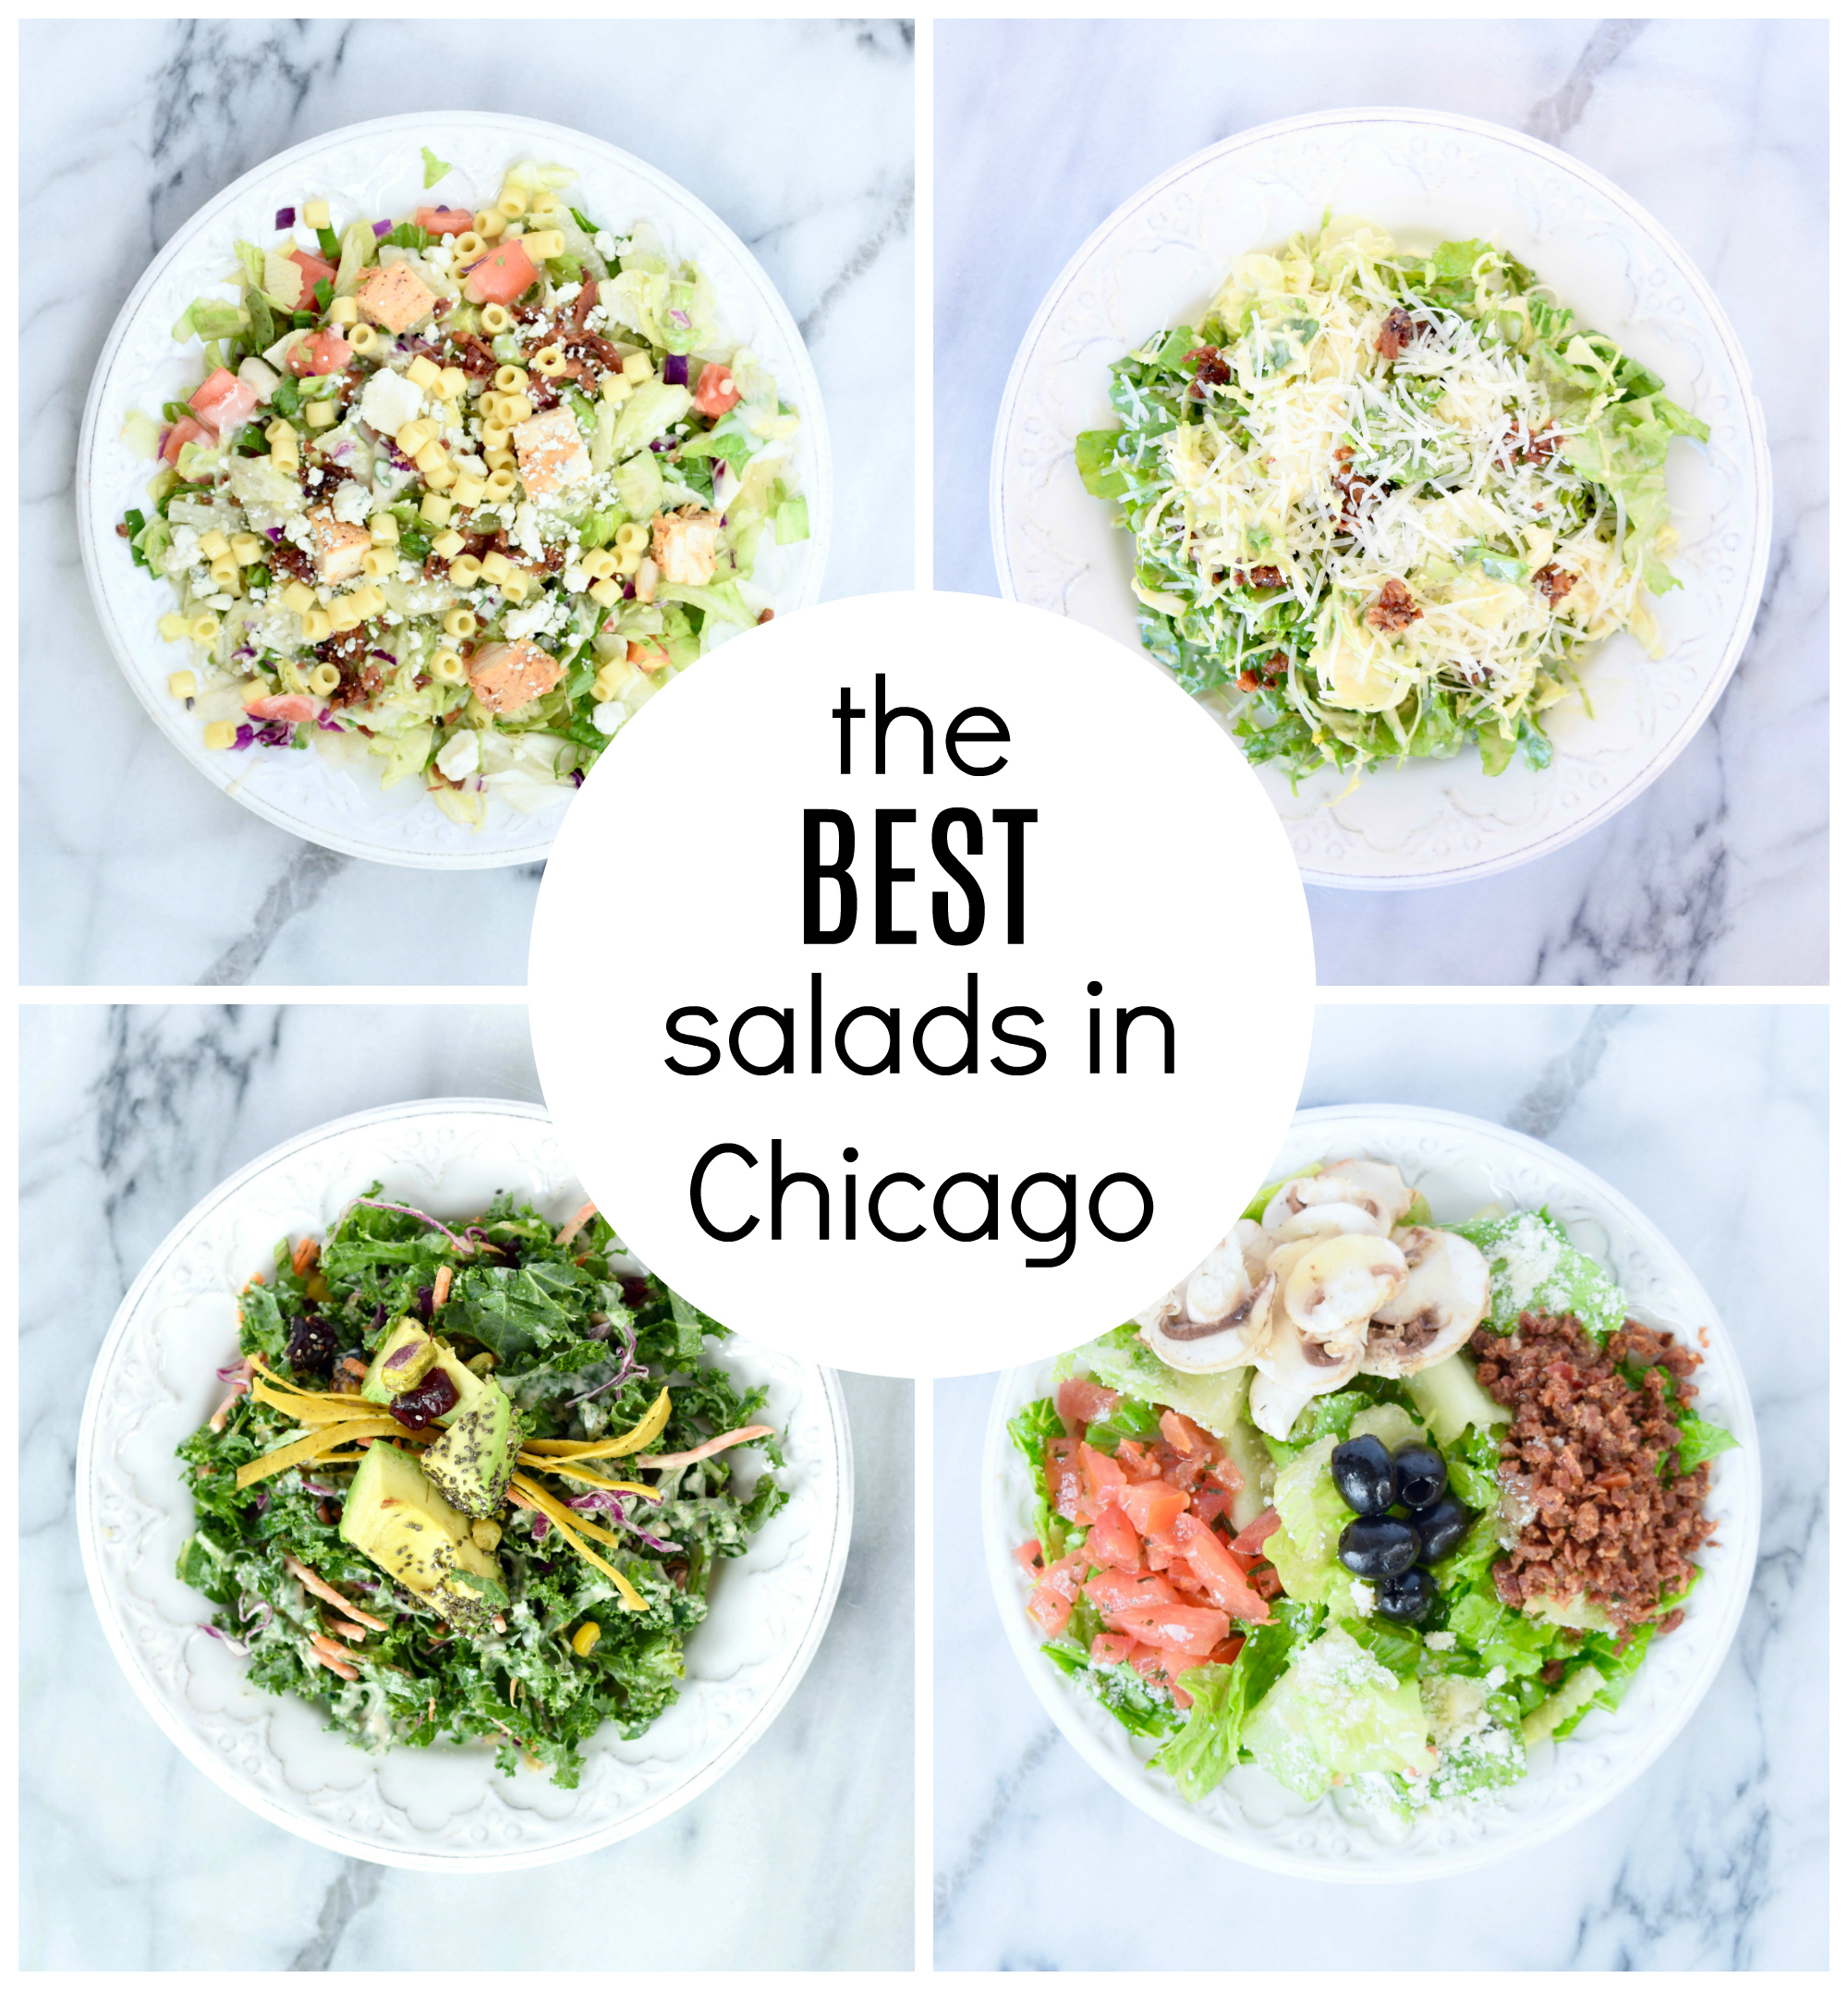 THE BEST SALADS IN CHICAGO-2